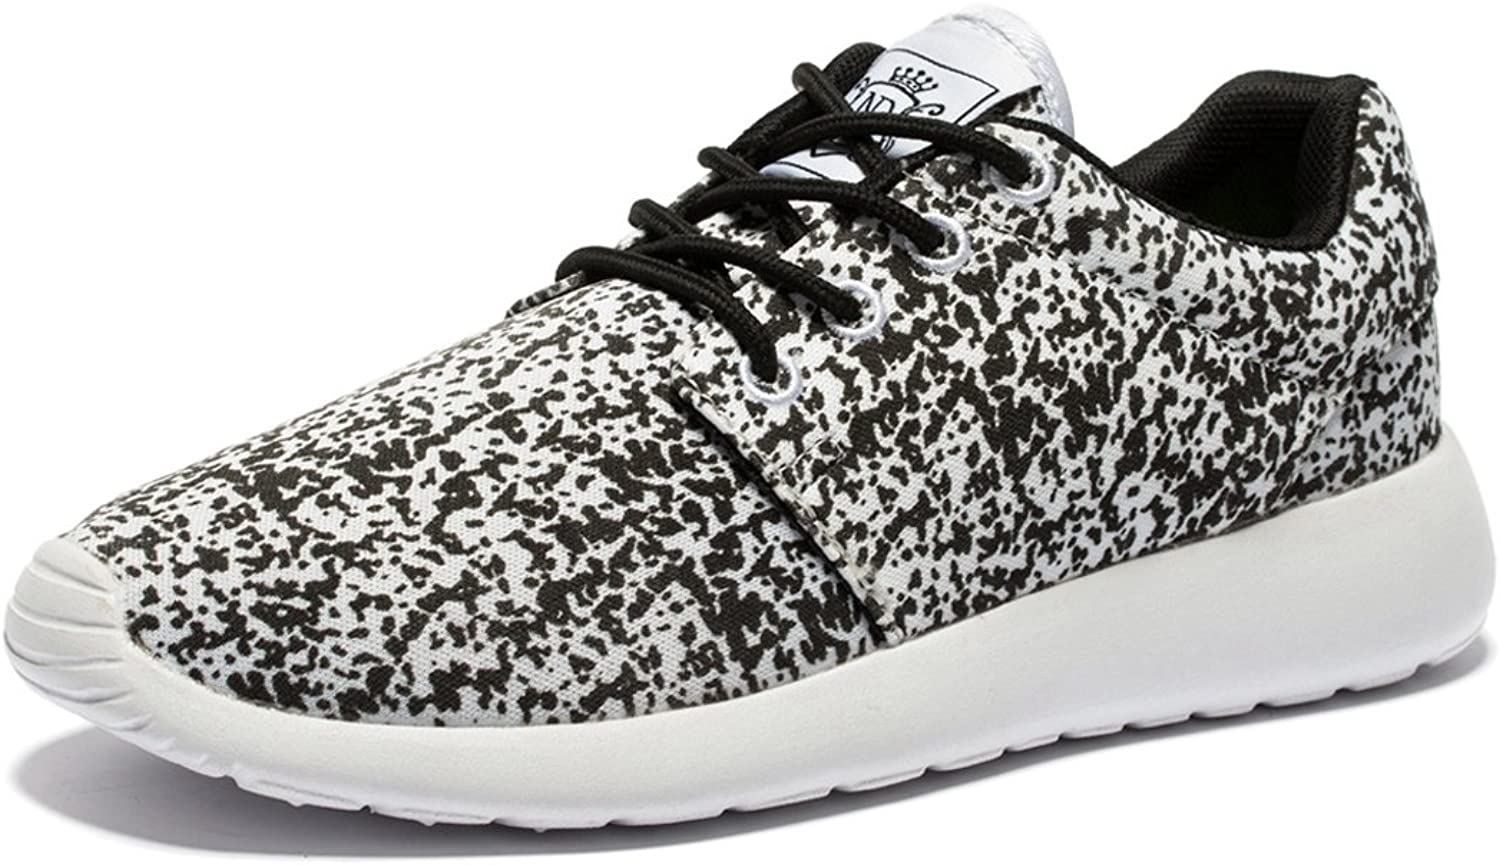 FENGDA Women's Running Sneakers Fashion Outdoor Athletic Walking shoes Lightweight